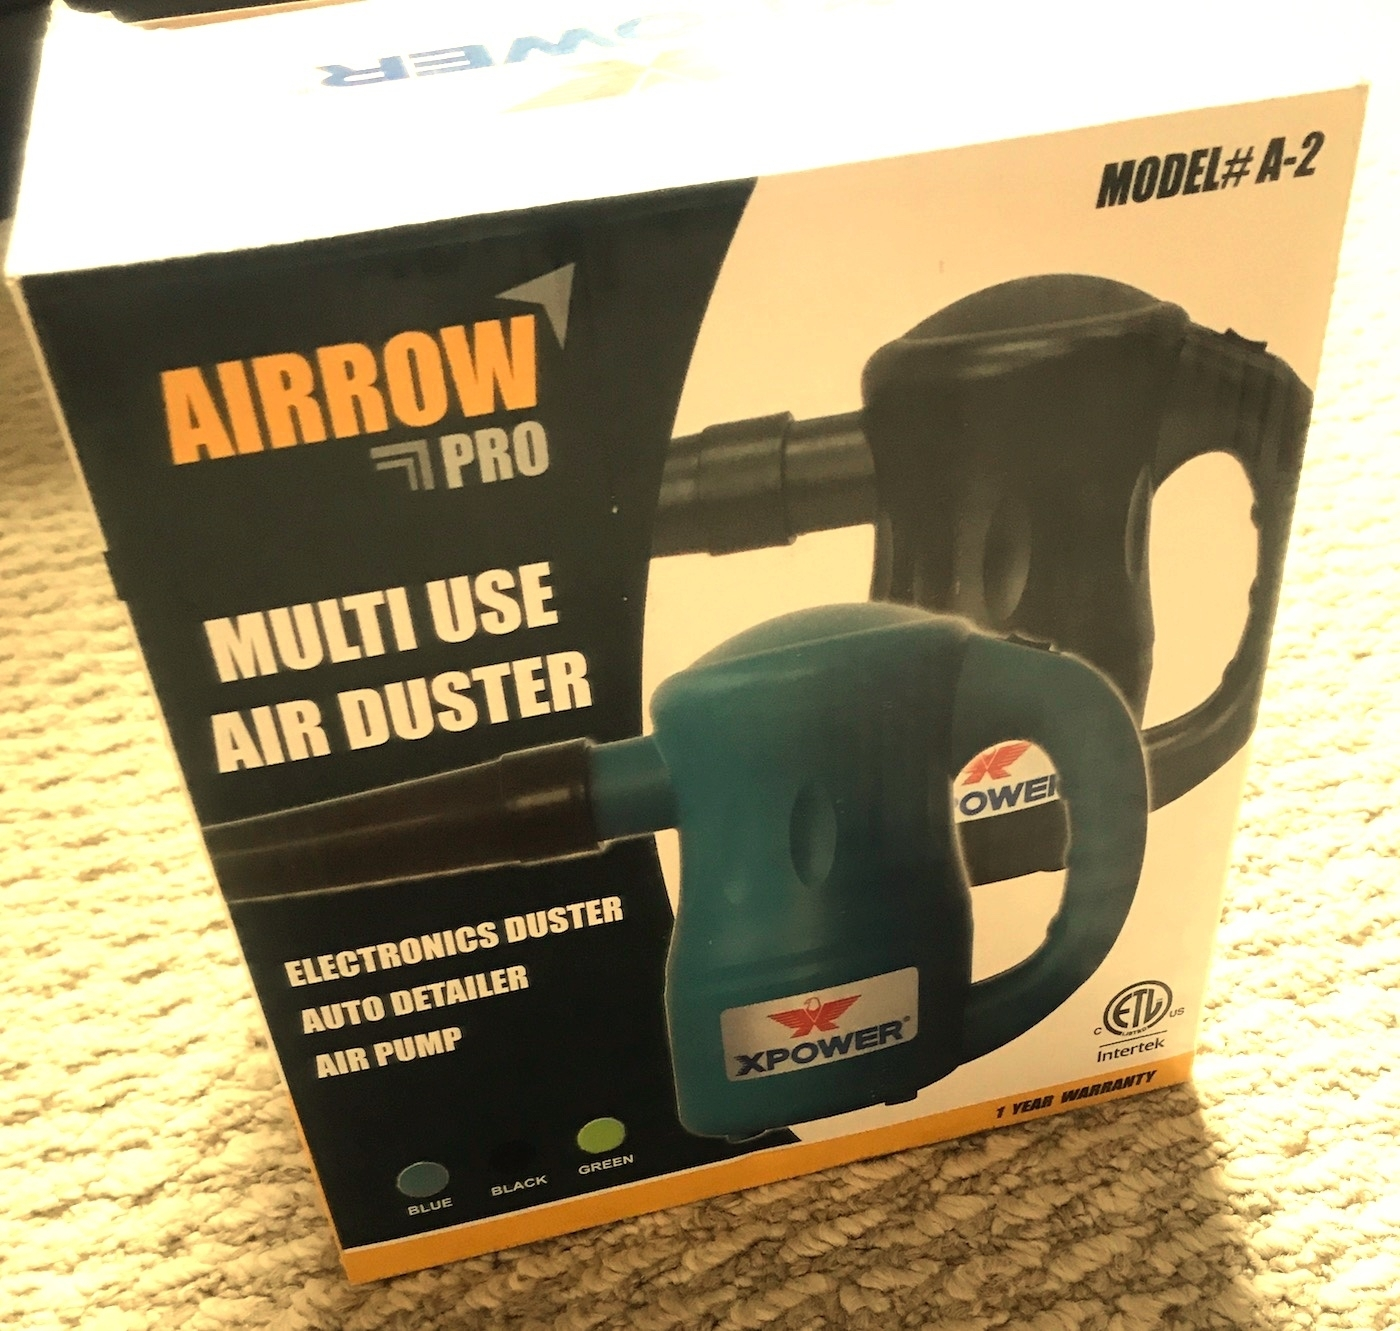 Review Best Cheap Reliable Electric Air Duster - XPOWER A-2 Airrow Pro Air Blower